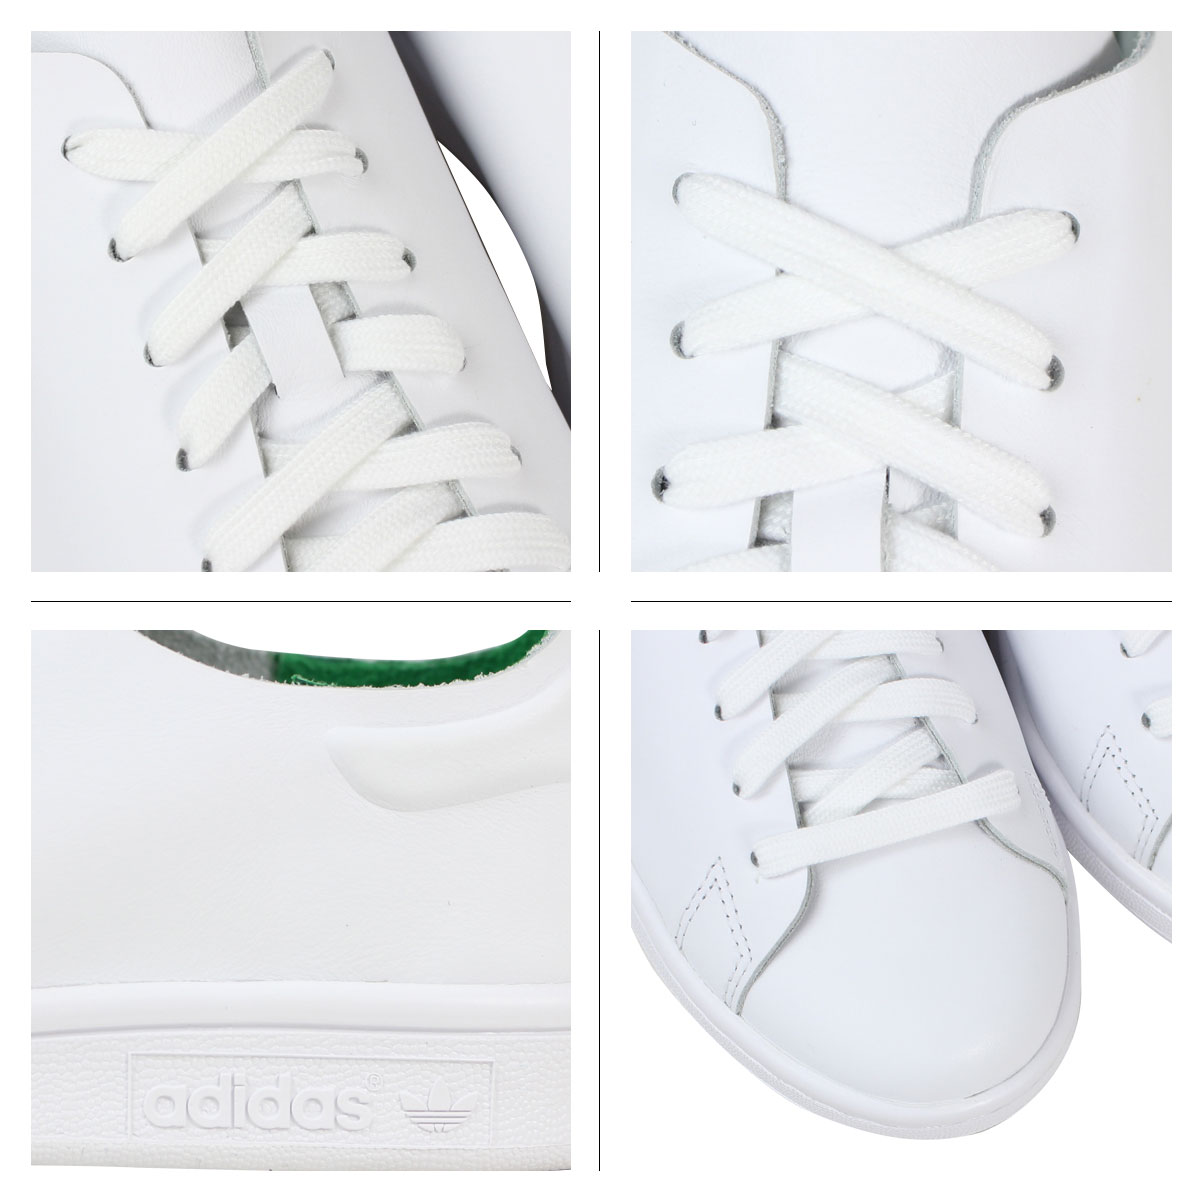 adidas Originals adidas originals Stan Smith sneakers Womens STAN SMITH NUUDE W S76544 shoes white [8/5 new in stock]